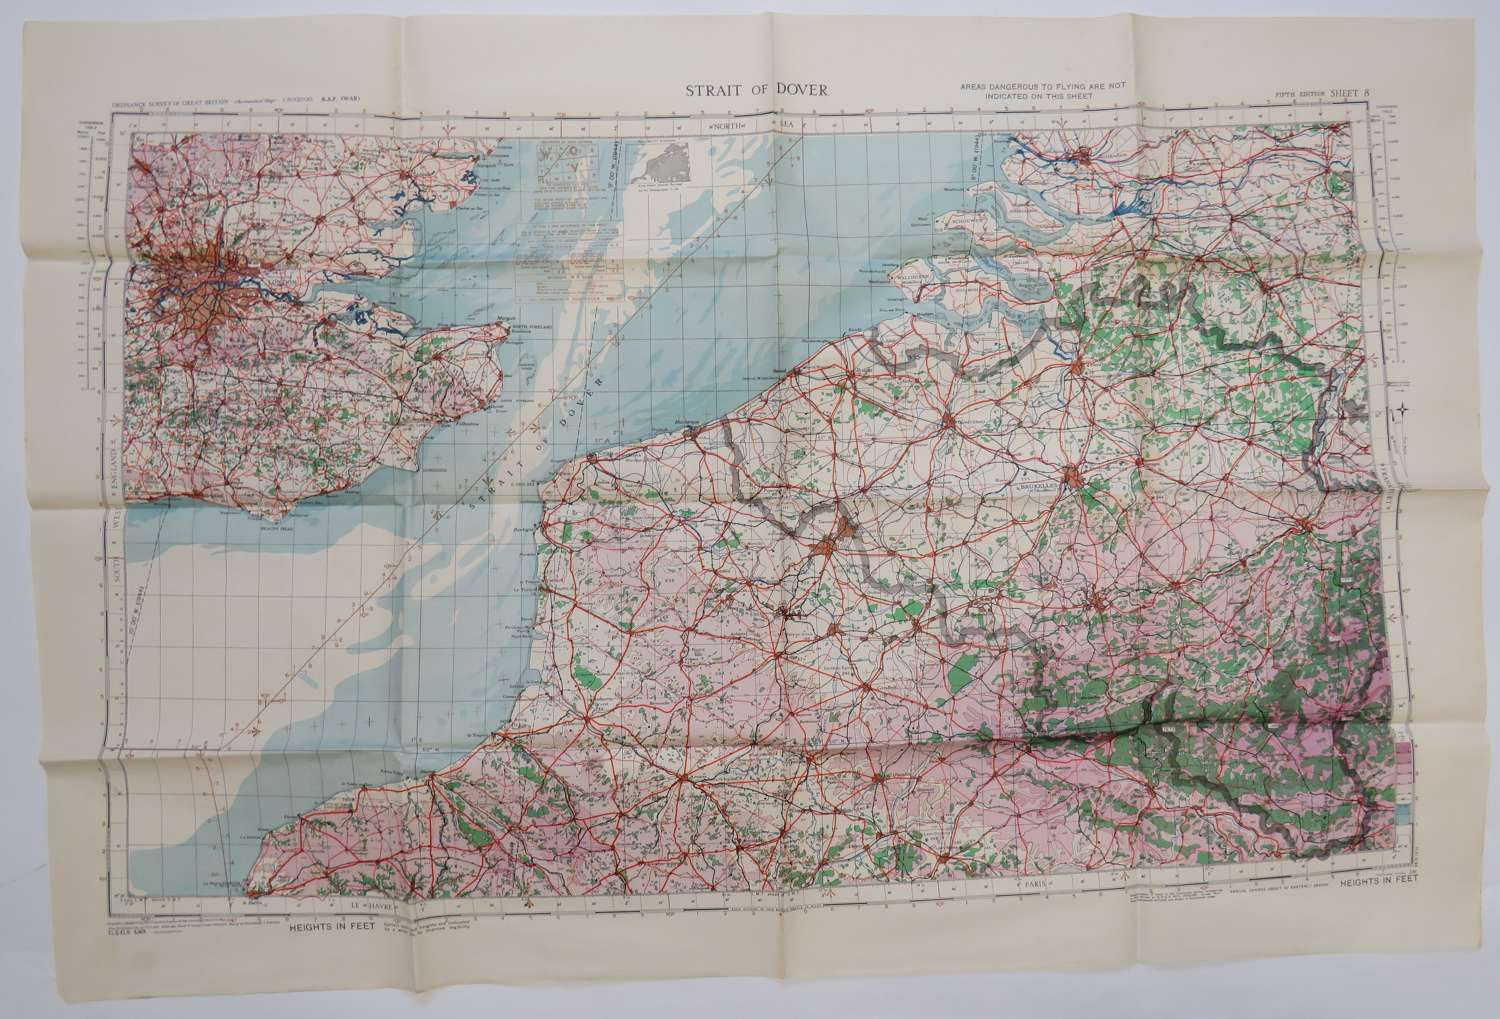 R.A.F Issue Straits of Dover Map